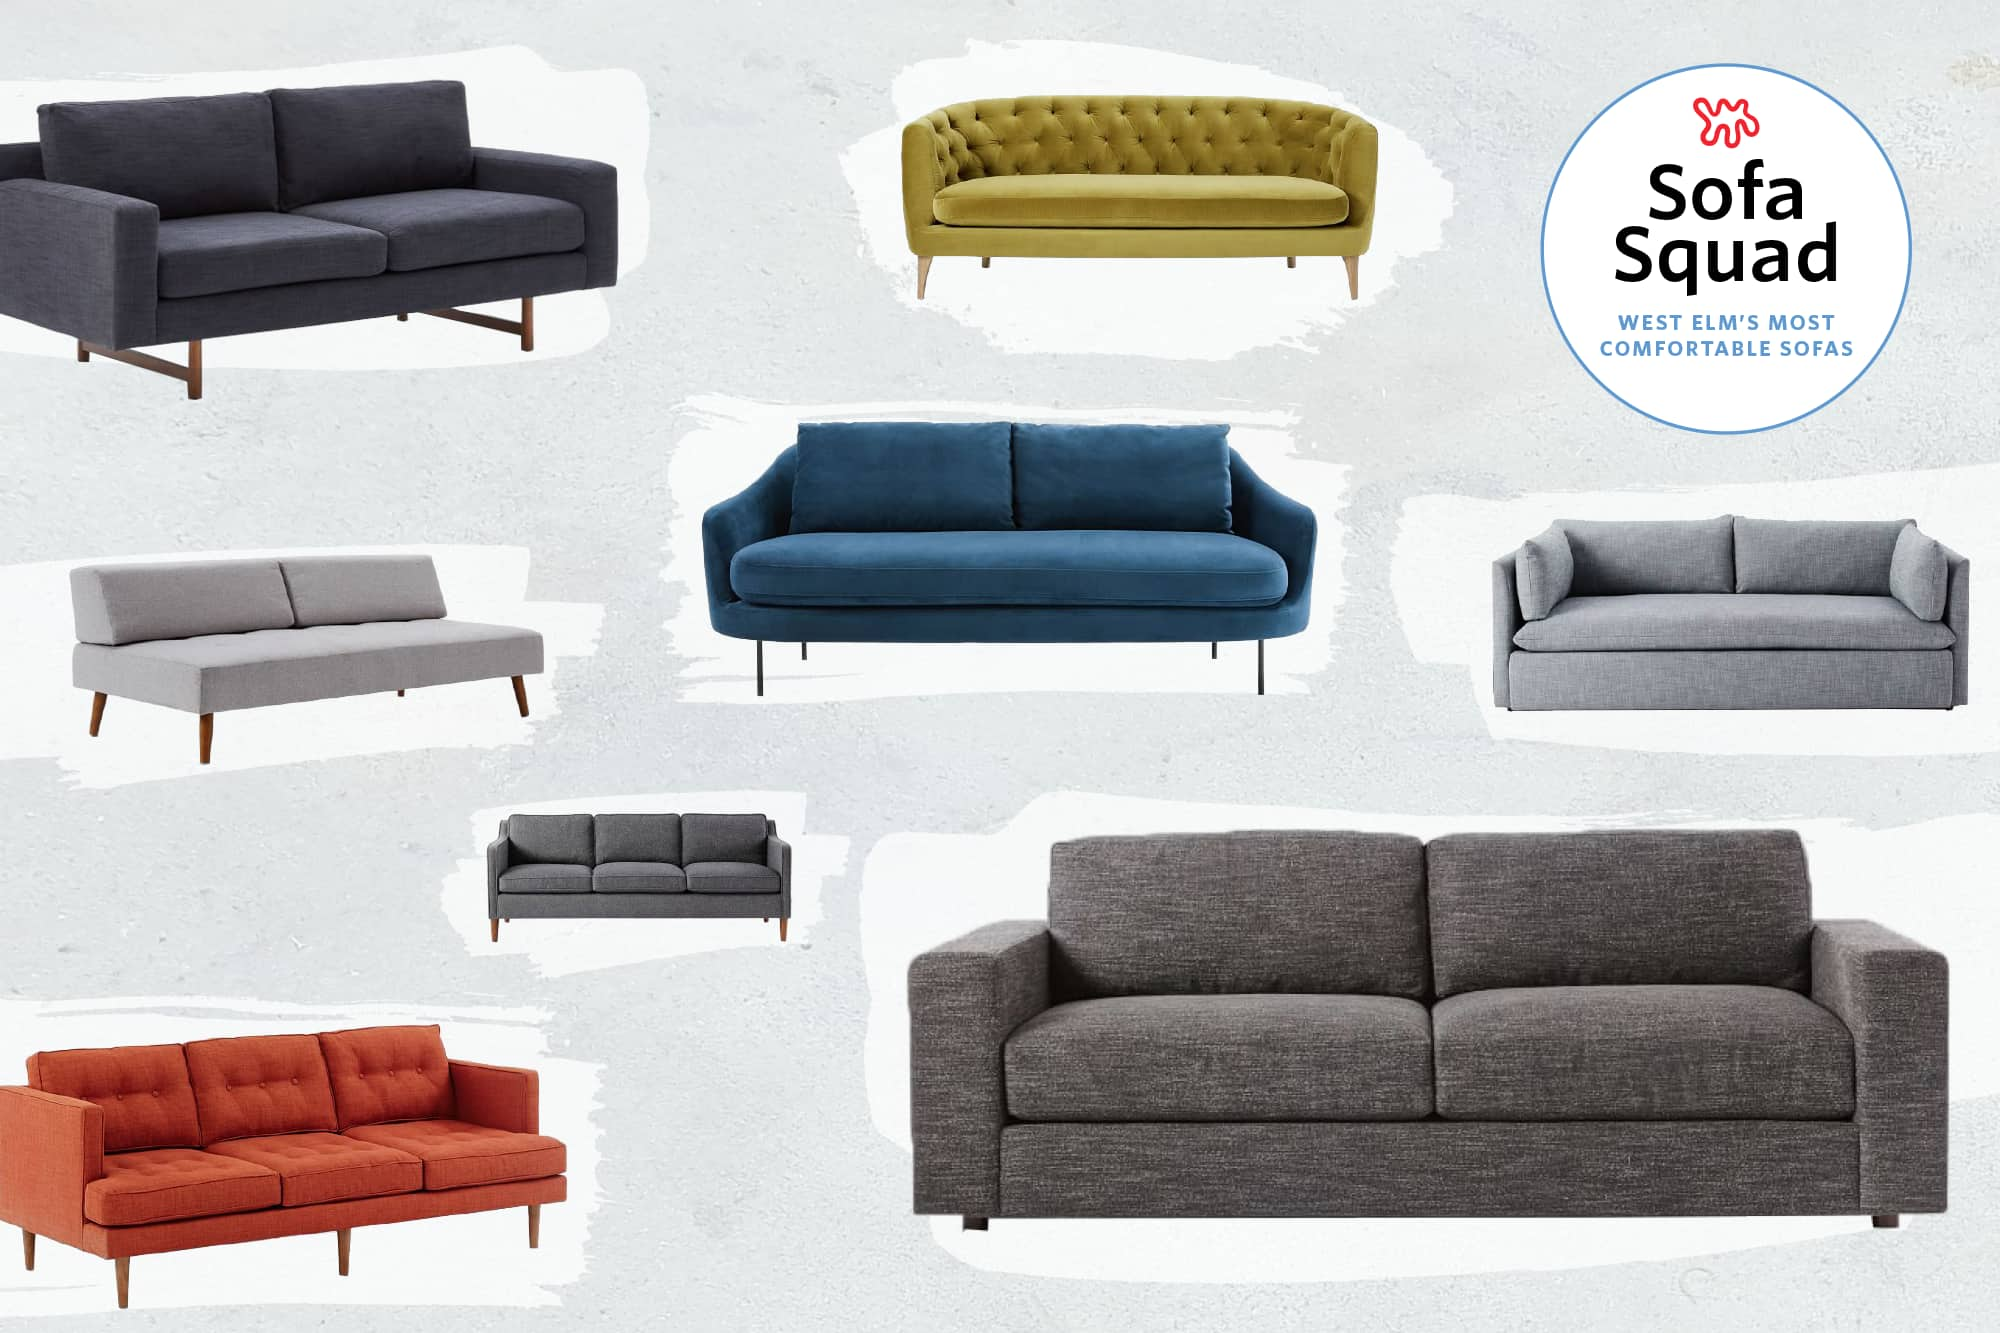 Reviewed The Most Comfortable Sofas At West Elm Apartment Therapy